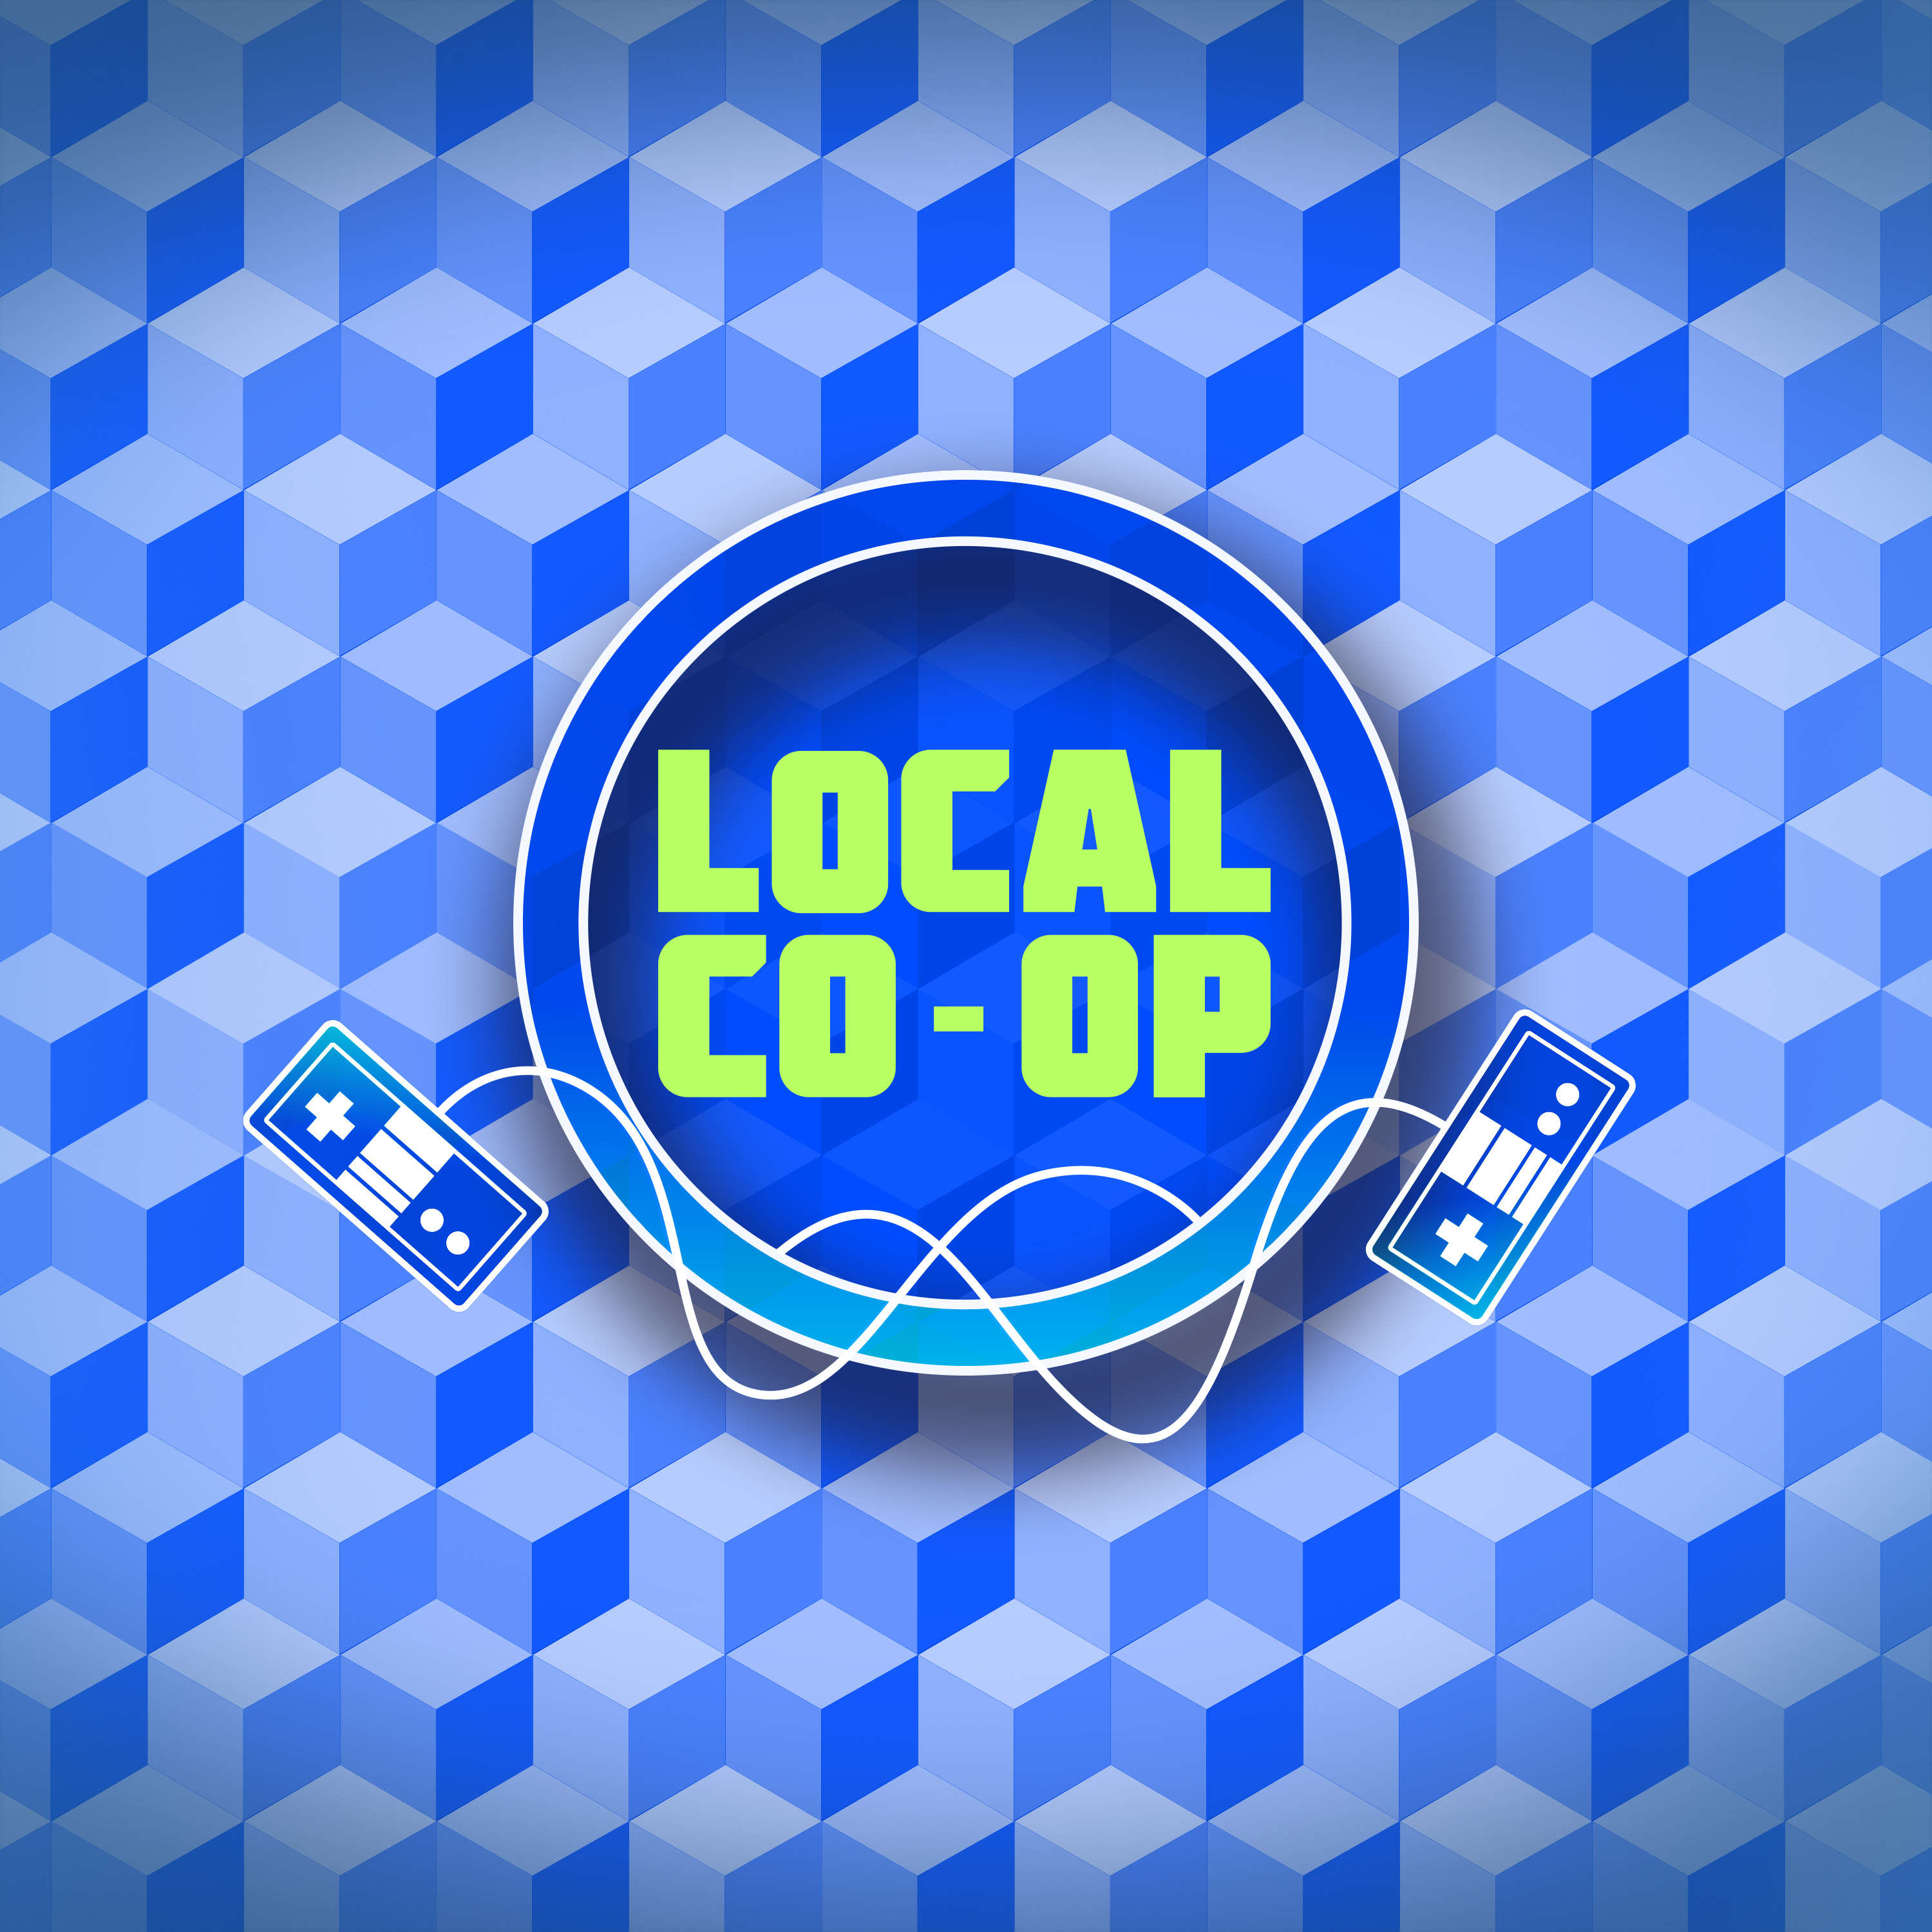 LOCAL CO-OP: Episode 4 - Preservation vs Piracy